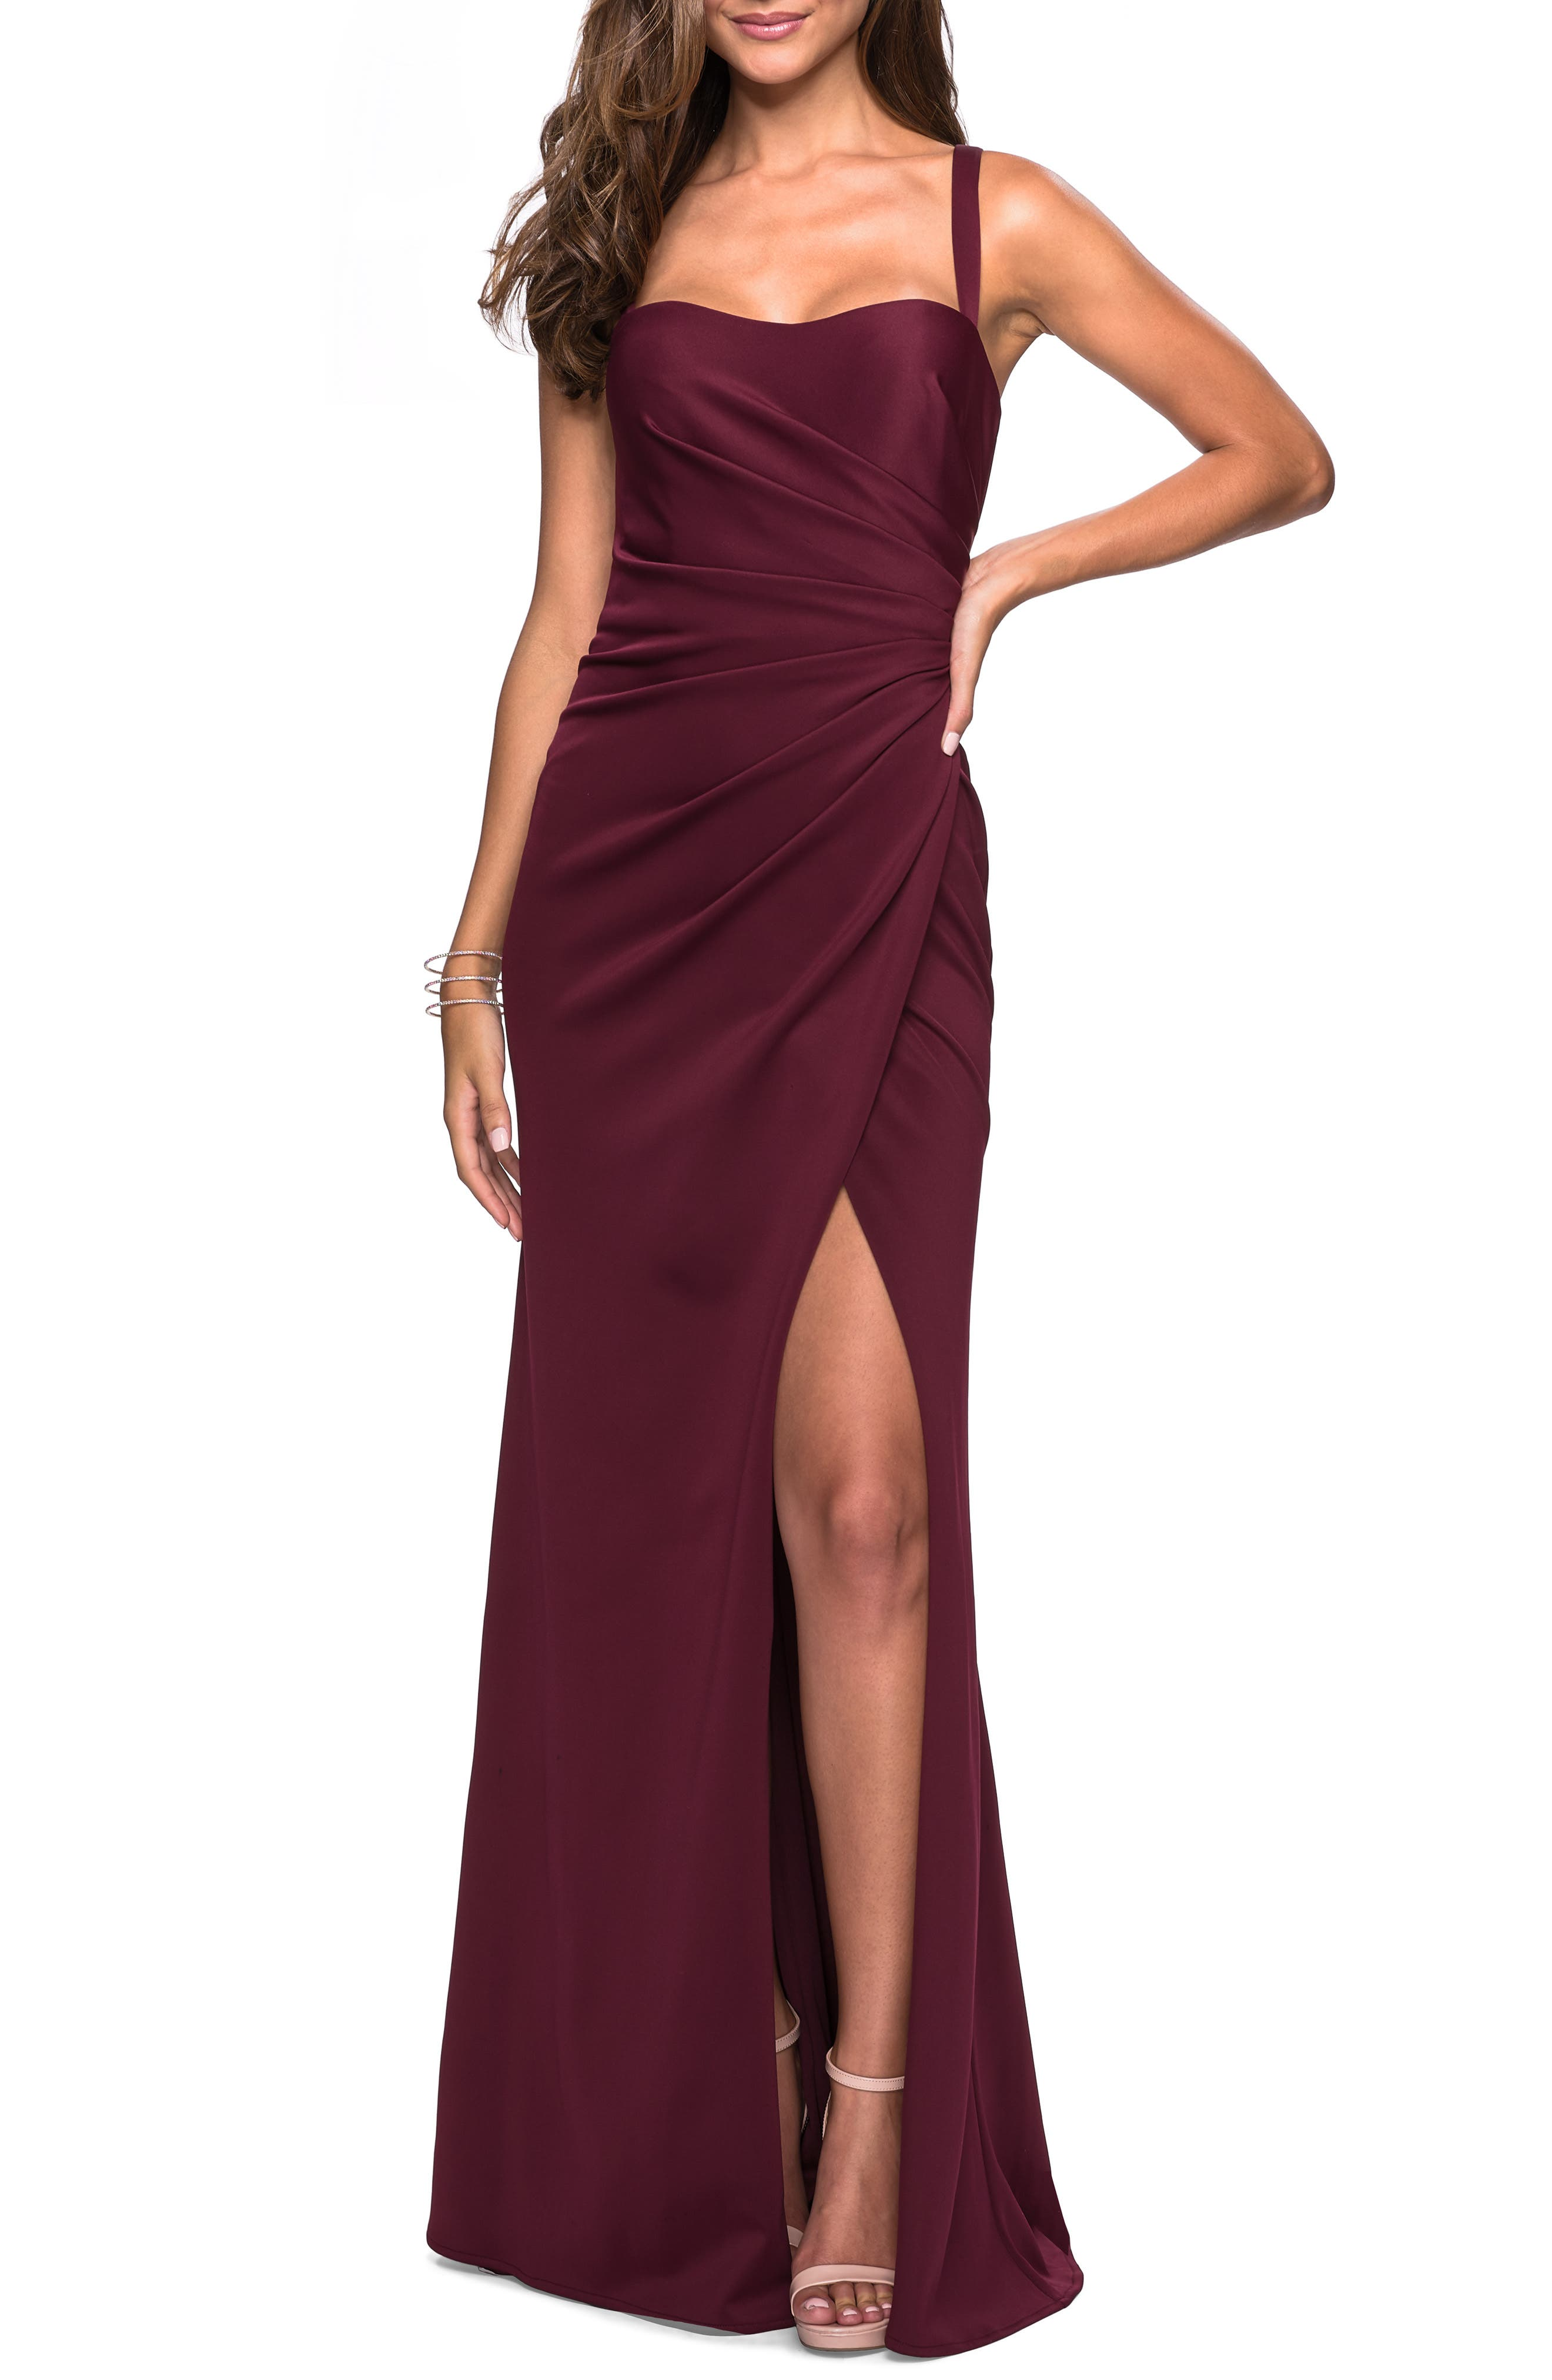 La Femme Ruched Soft Jersey Evening Dress, Burgundy